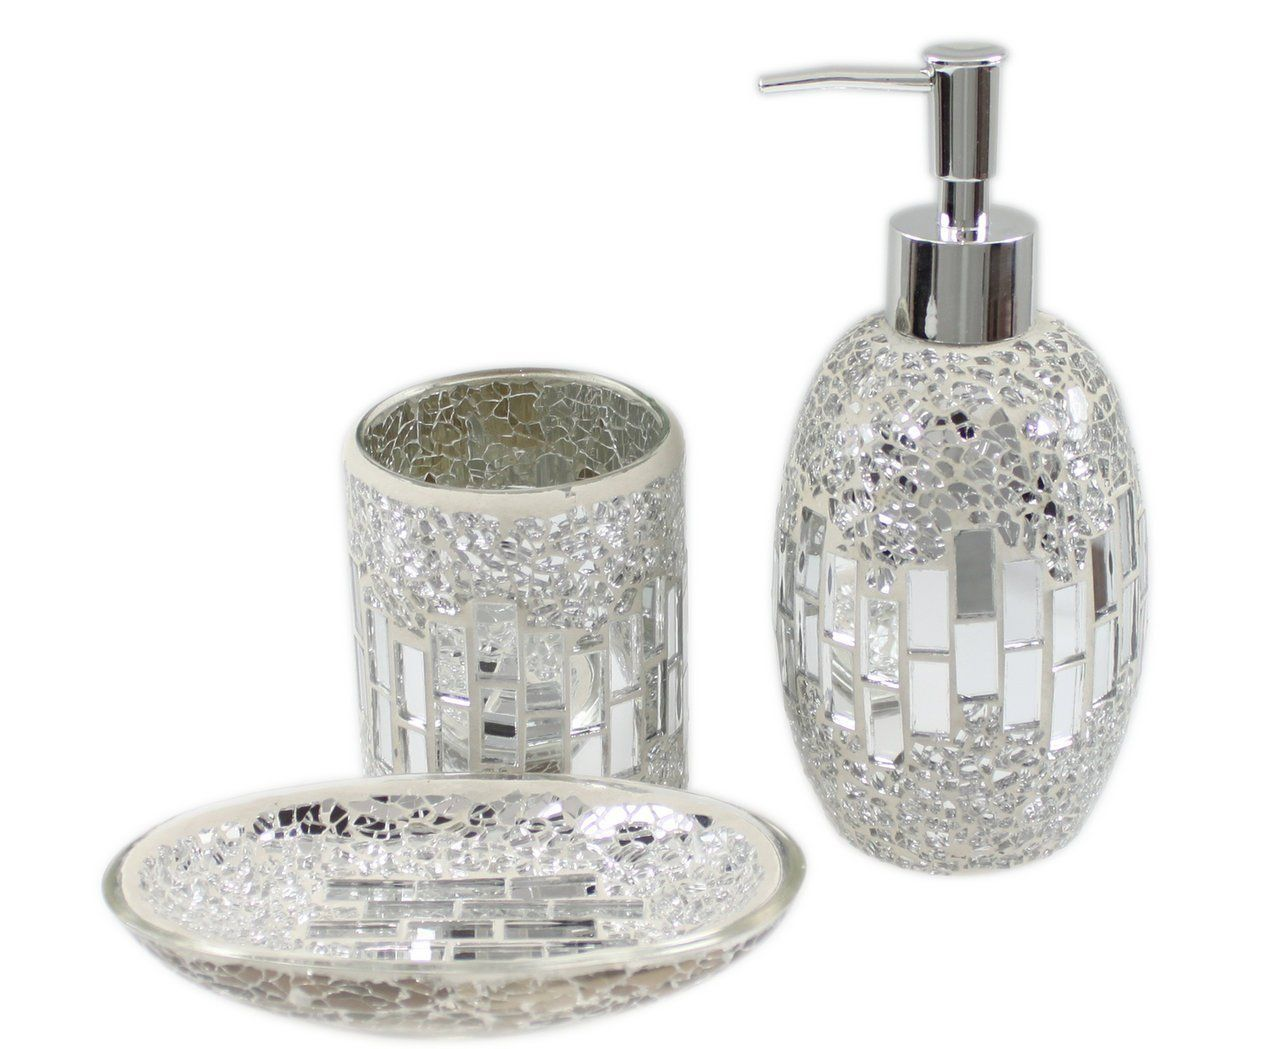 3 piece modern silver chrome sparkle mosaic glass tile bathroom